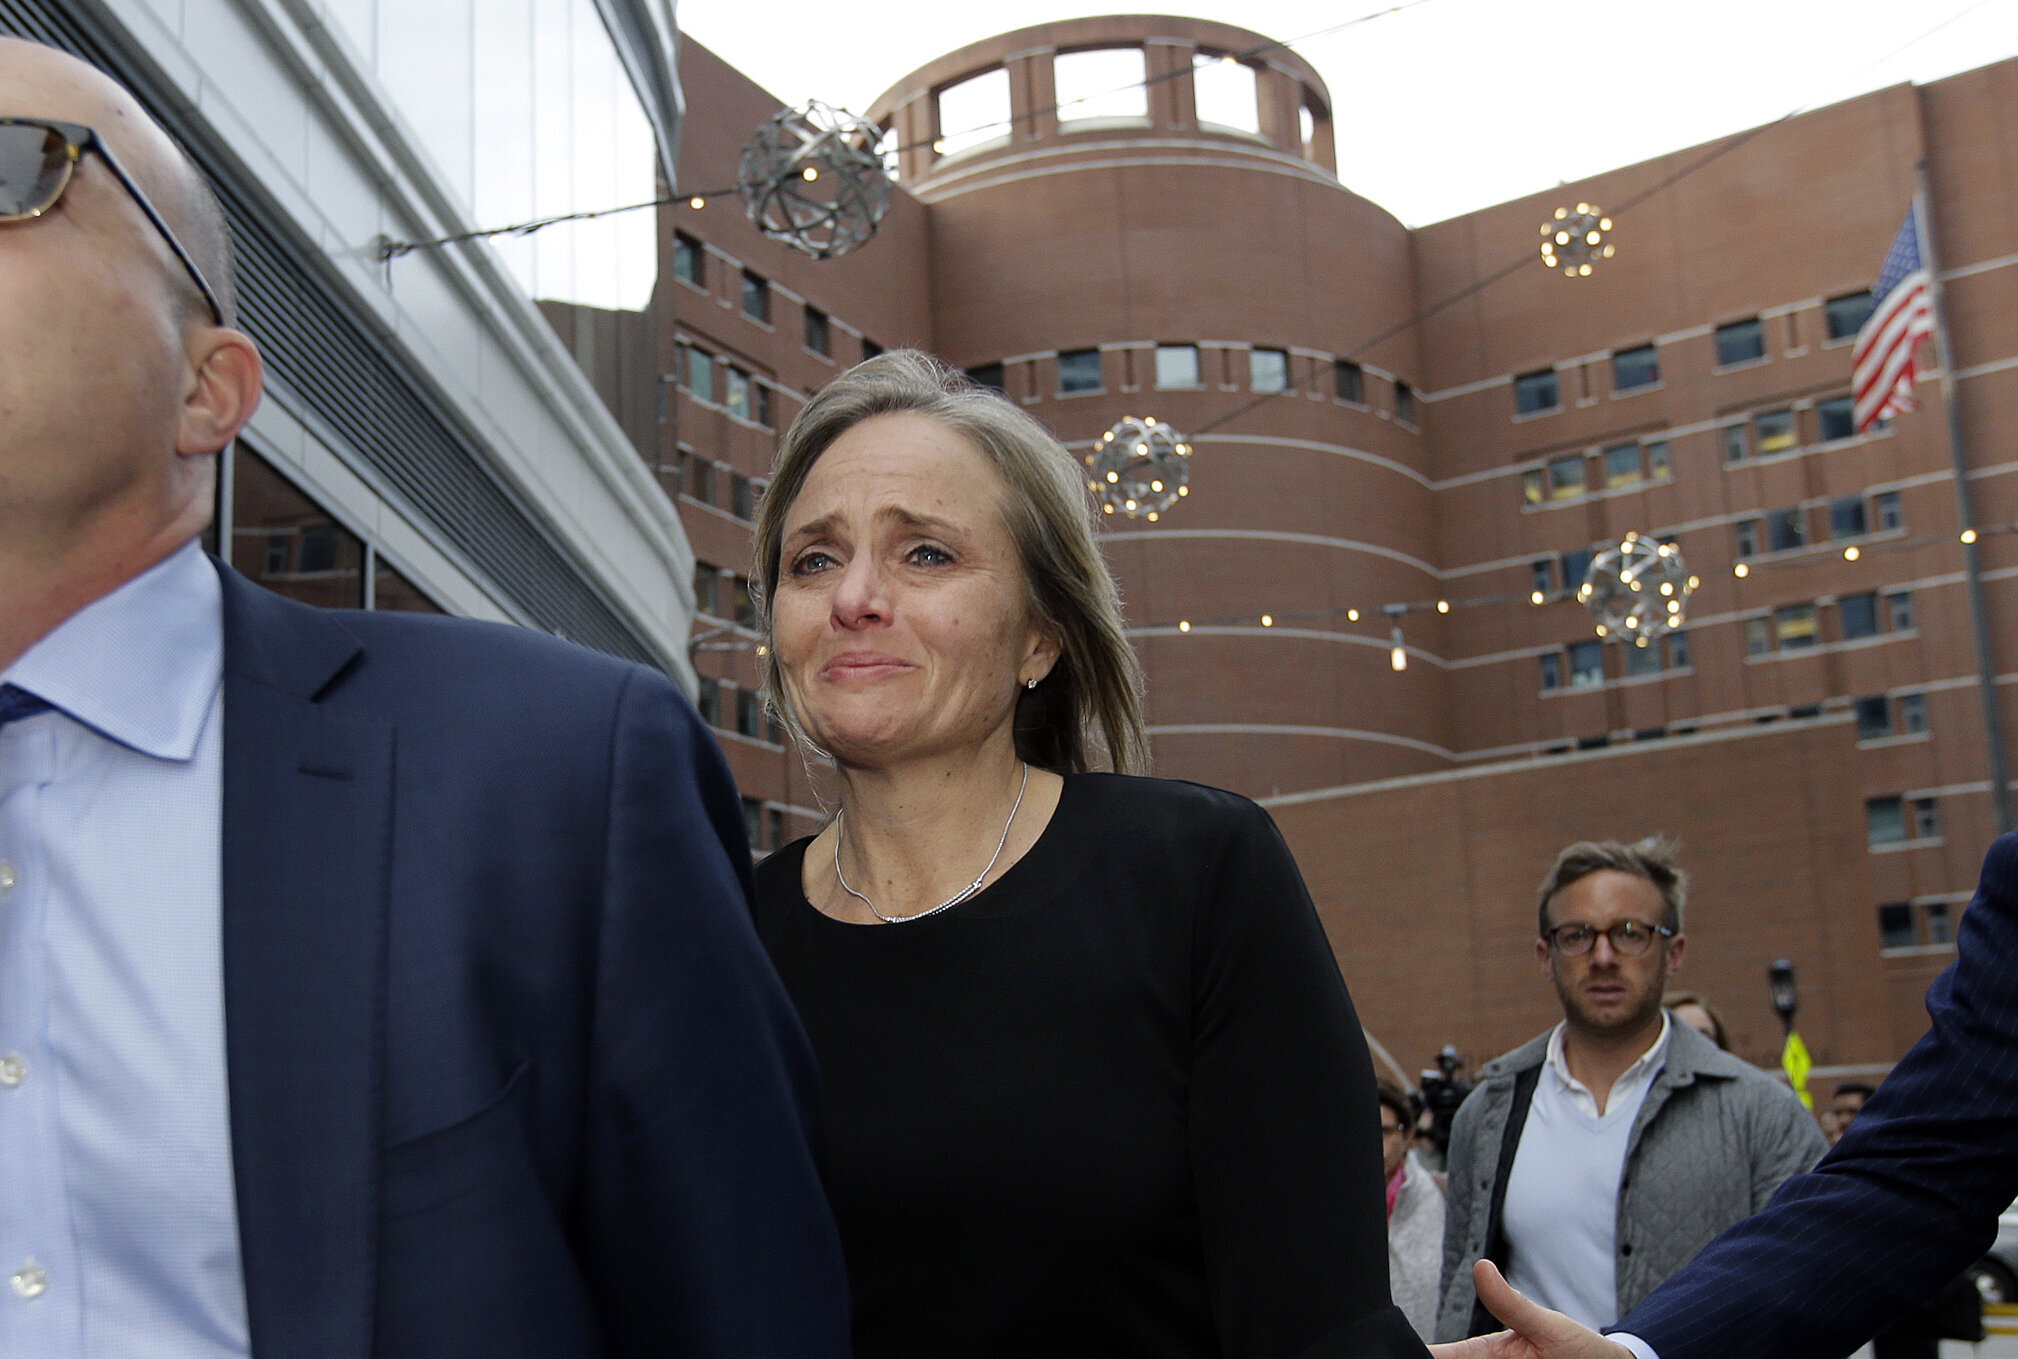 District Judge Shelley M. Richmond Joseph departs federal court, Thursday, April 25, 2019, in Boston after facing obstruction